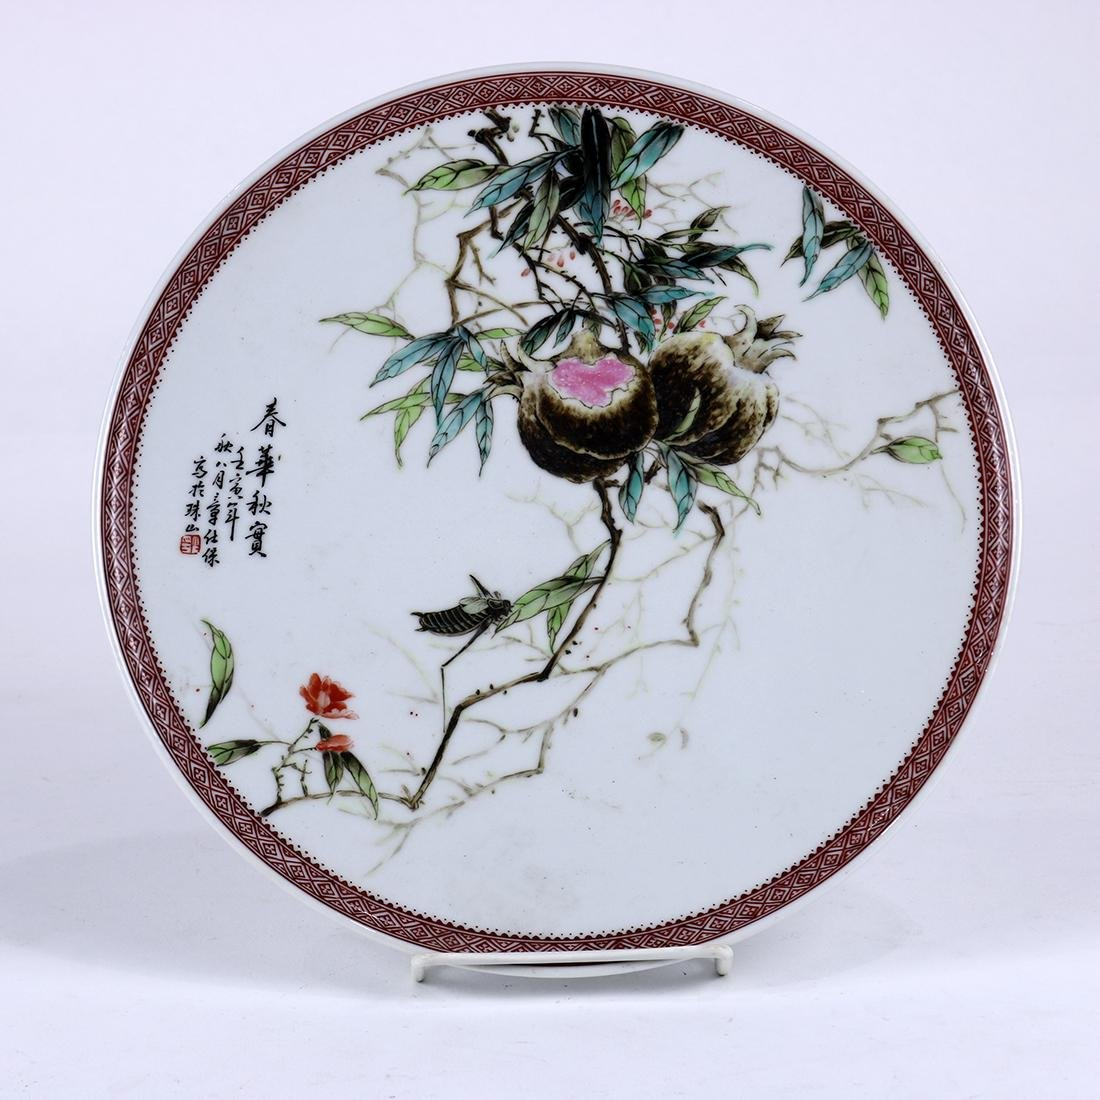 Chinese Porcelain Plate, Pomegranate